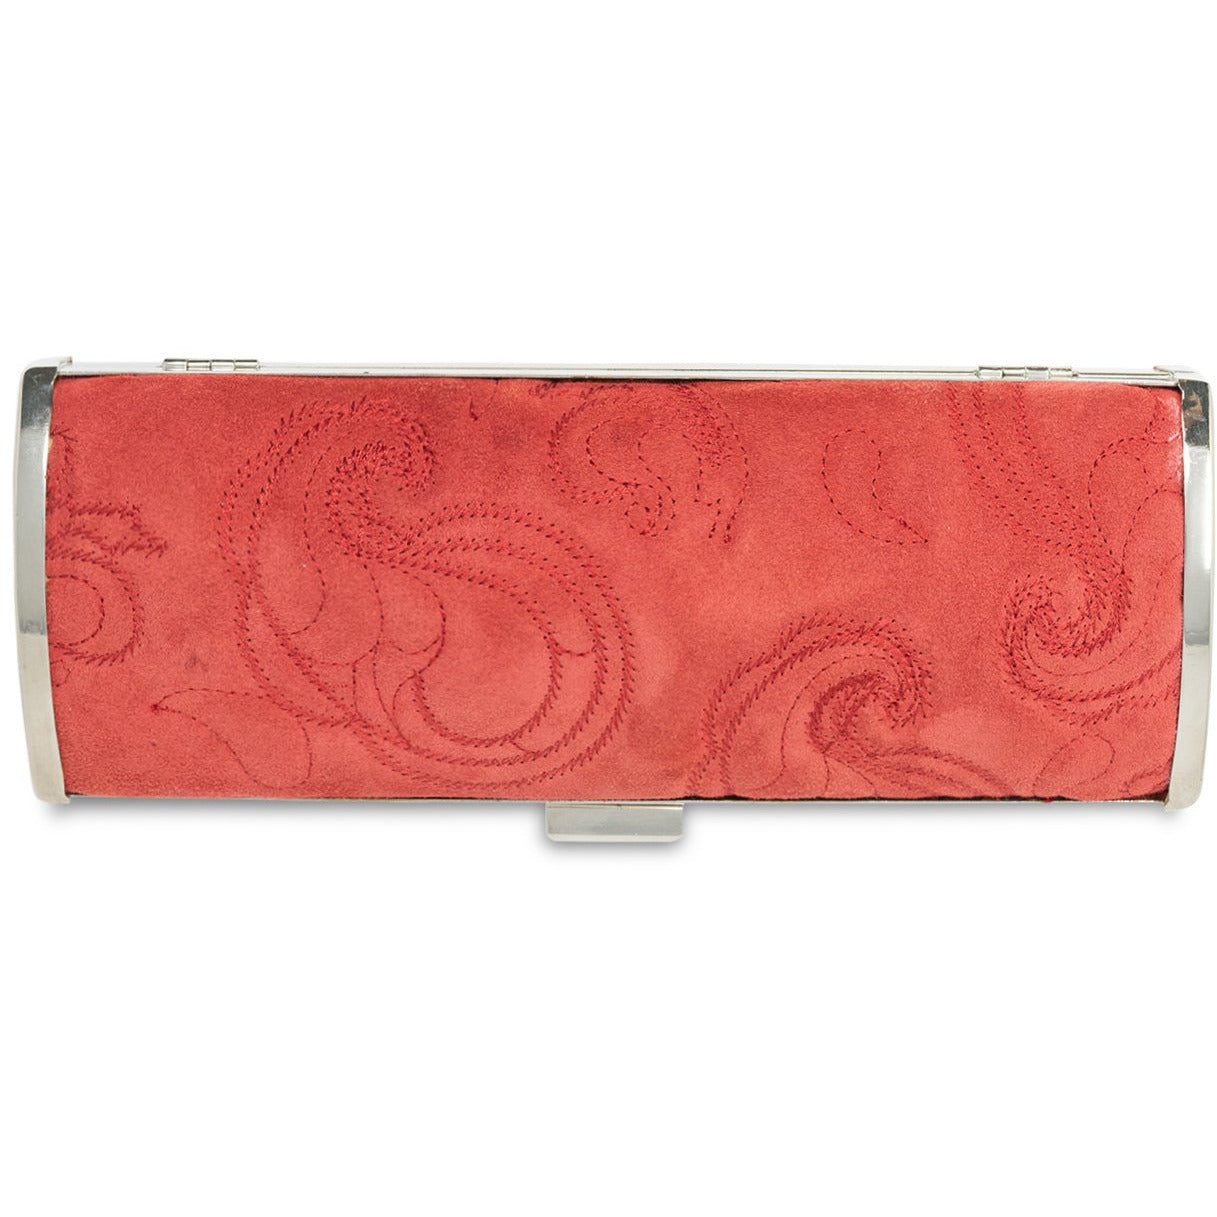 JT344 5358 Women Quilted Pasley Leather Clutch Bag - Jennifer Tattanelli